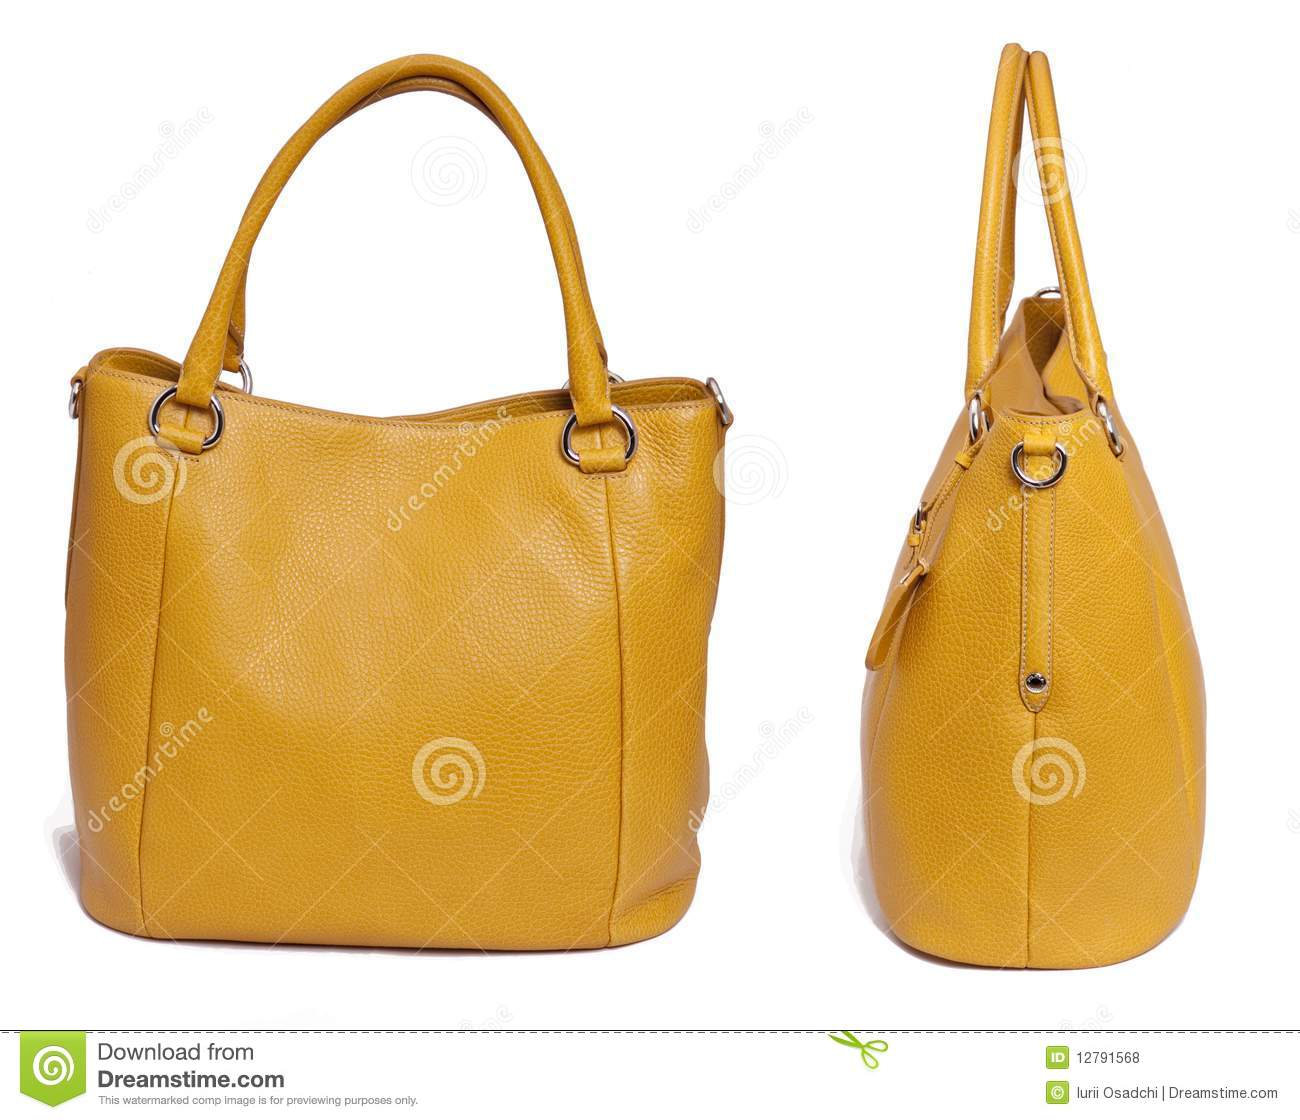 yellow-leather-woman-bag-12791568.jpg